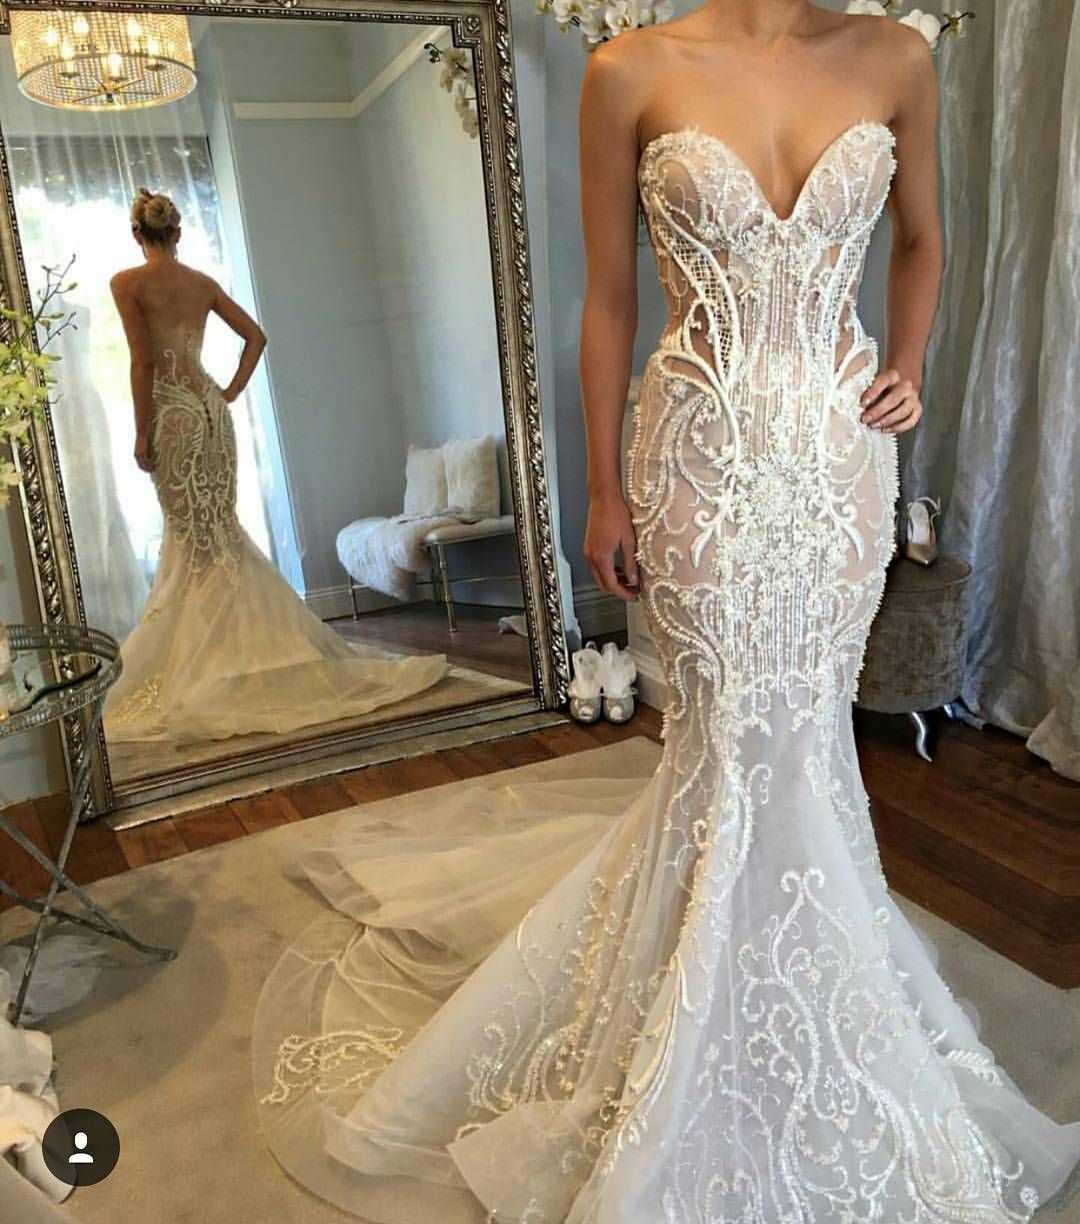 This Strapless Haute Couture Wedding Gown Is Extremely